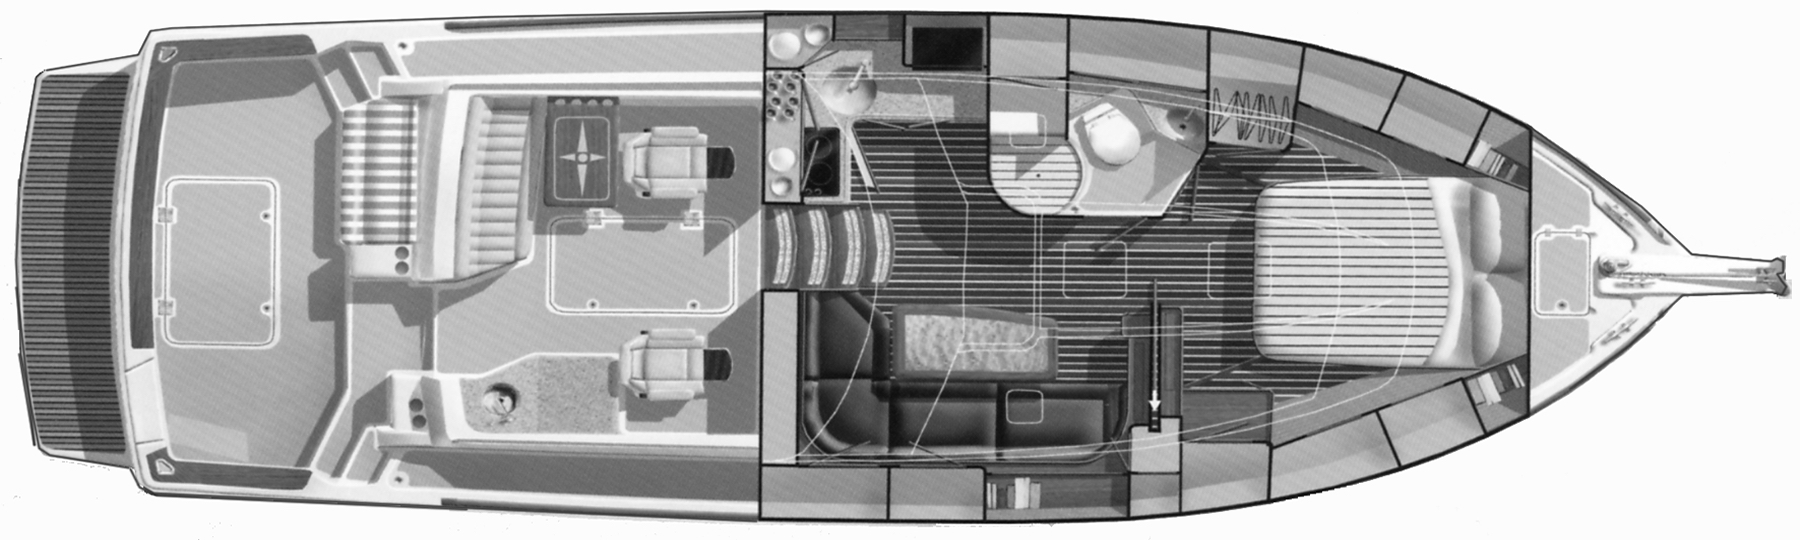 38 Express Floor Plan 1